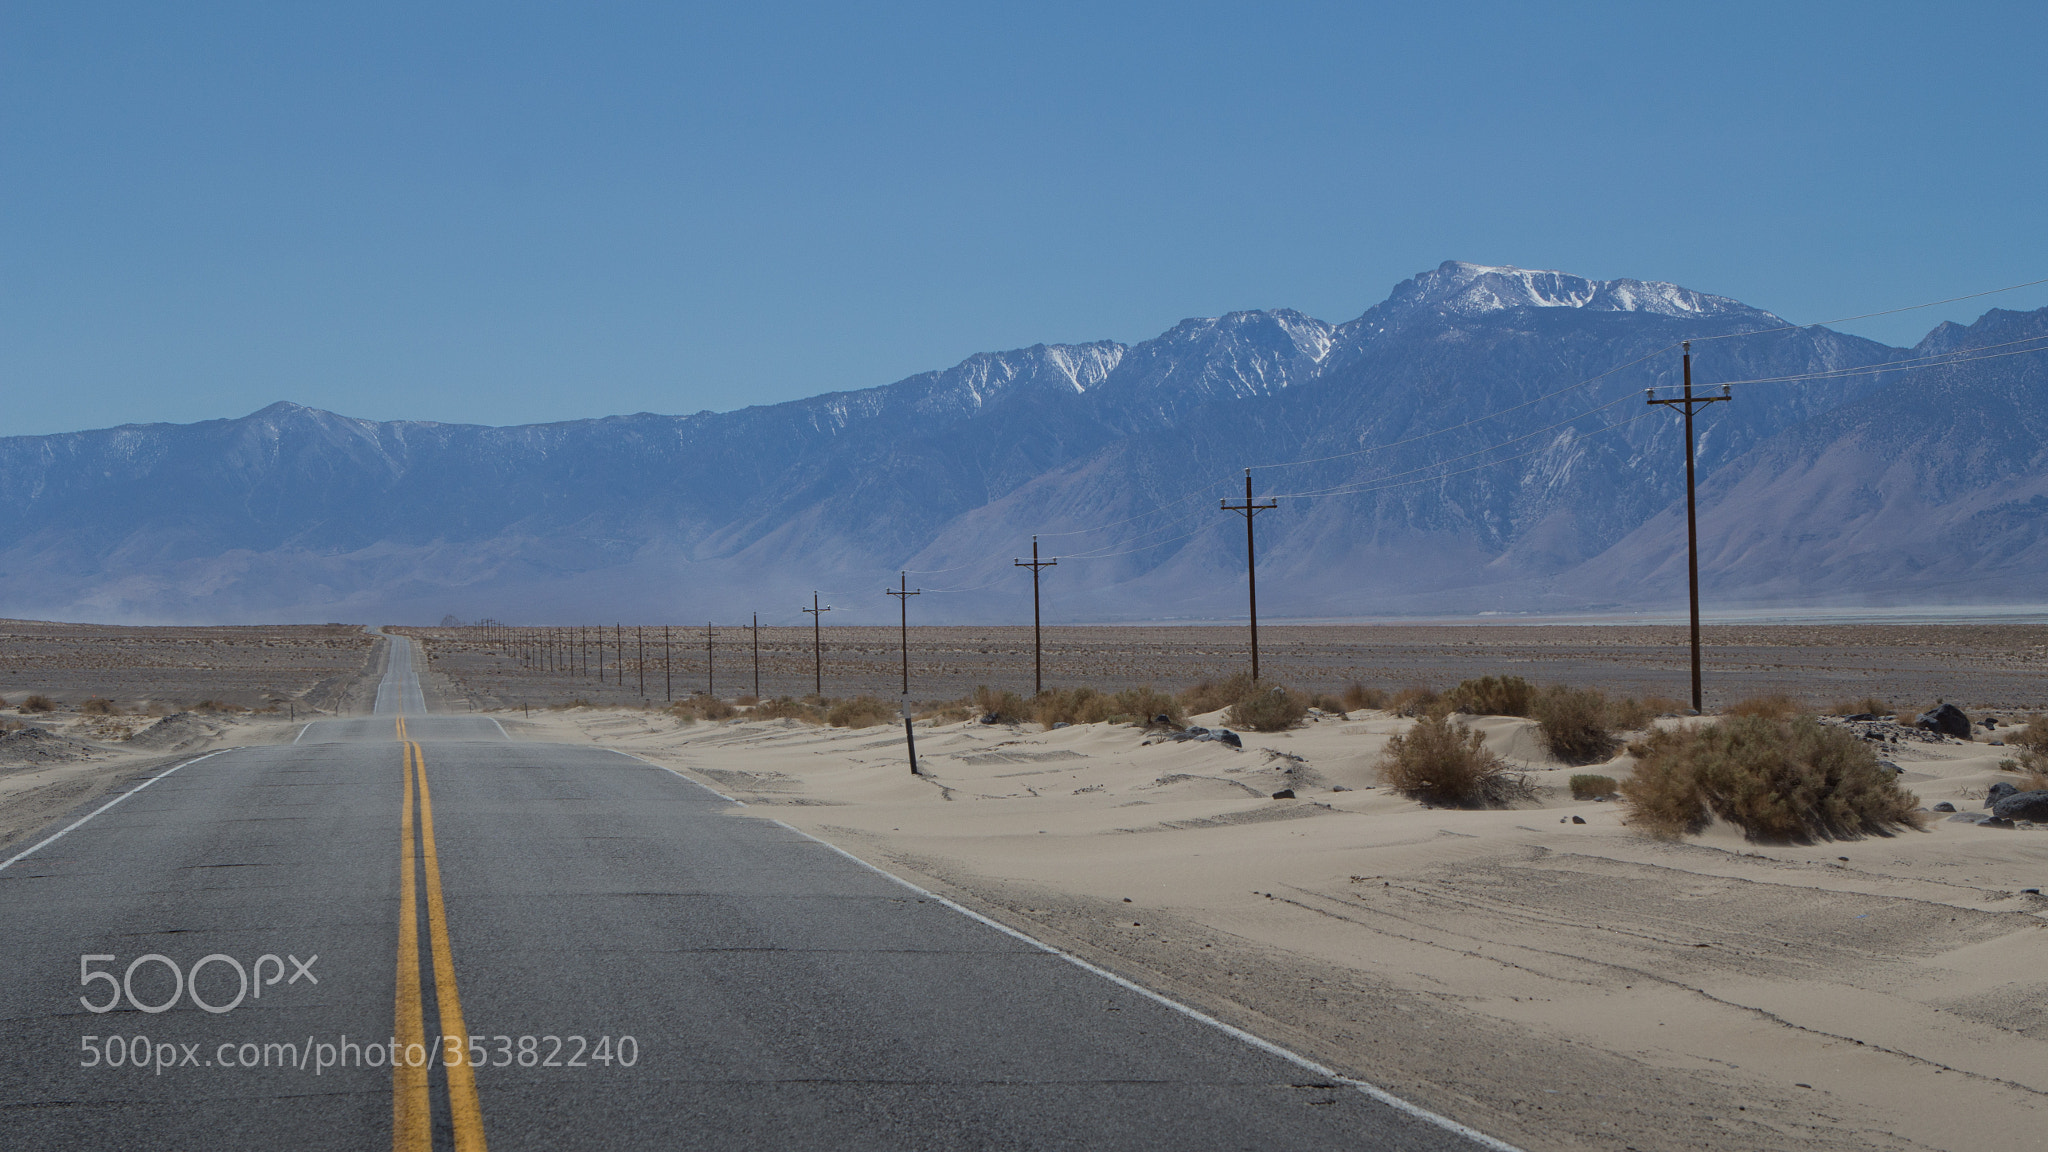 Photograph The long open road by Shannon Ley on 500px